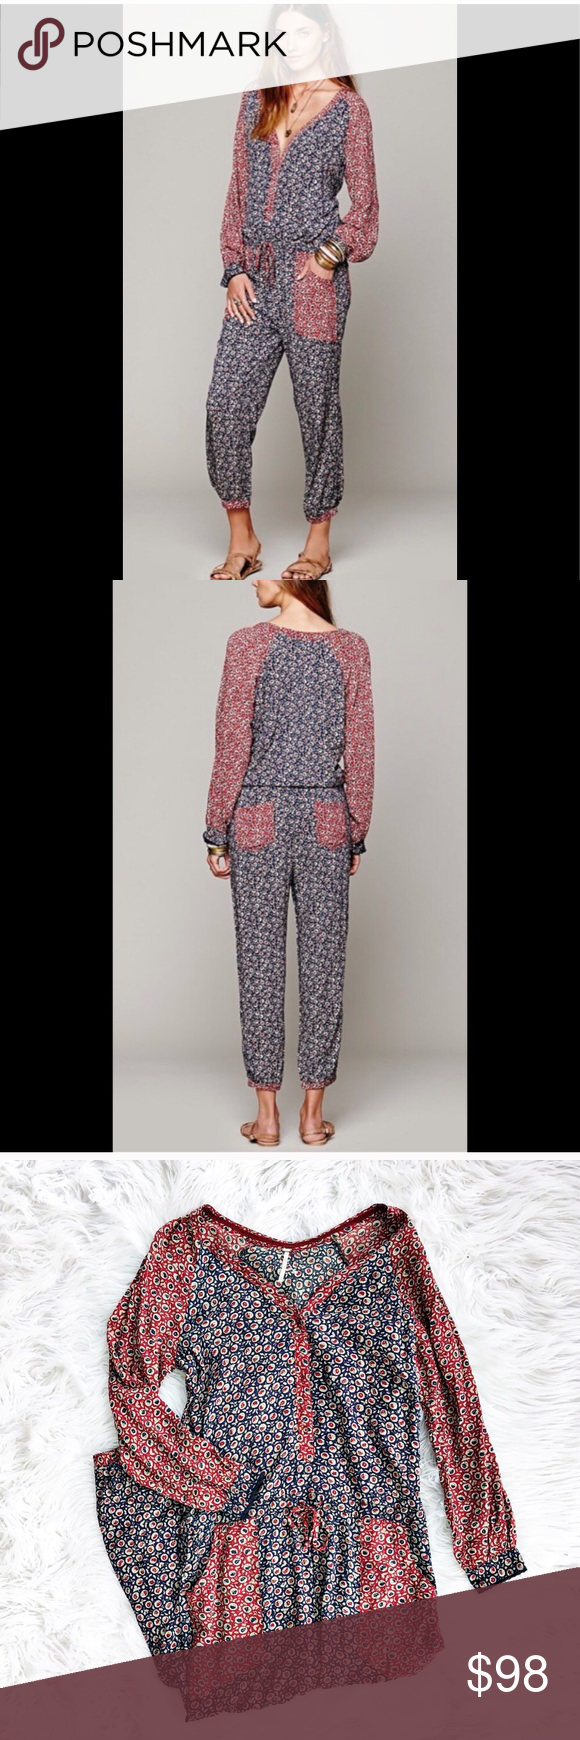 47cce77c8e3 Free People Leia floral print jumpsuit Long sleeved mixed floral print Leia  jumpsuit